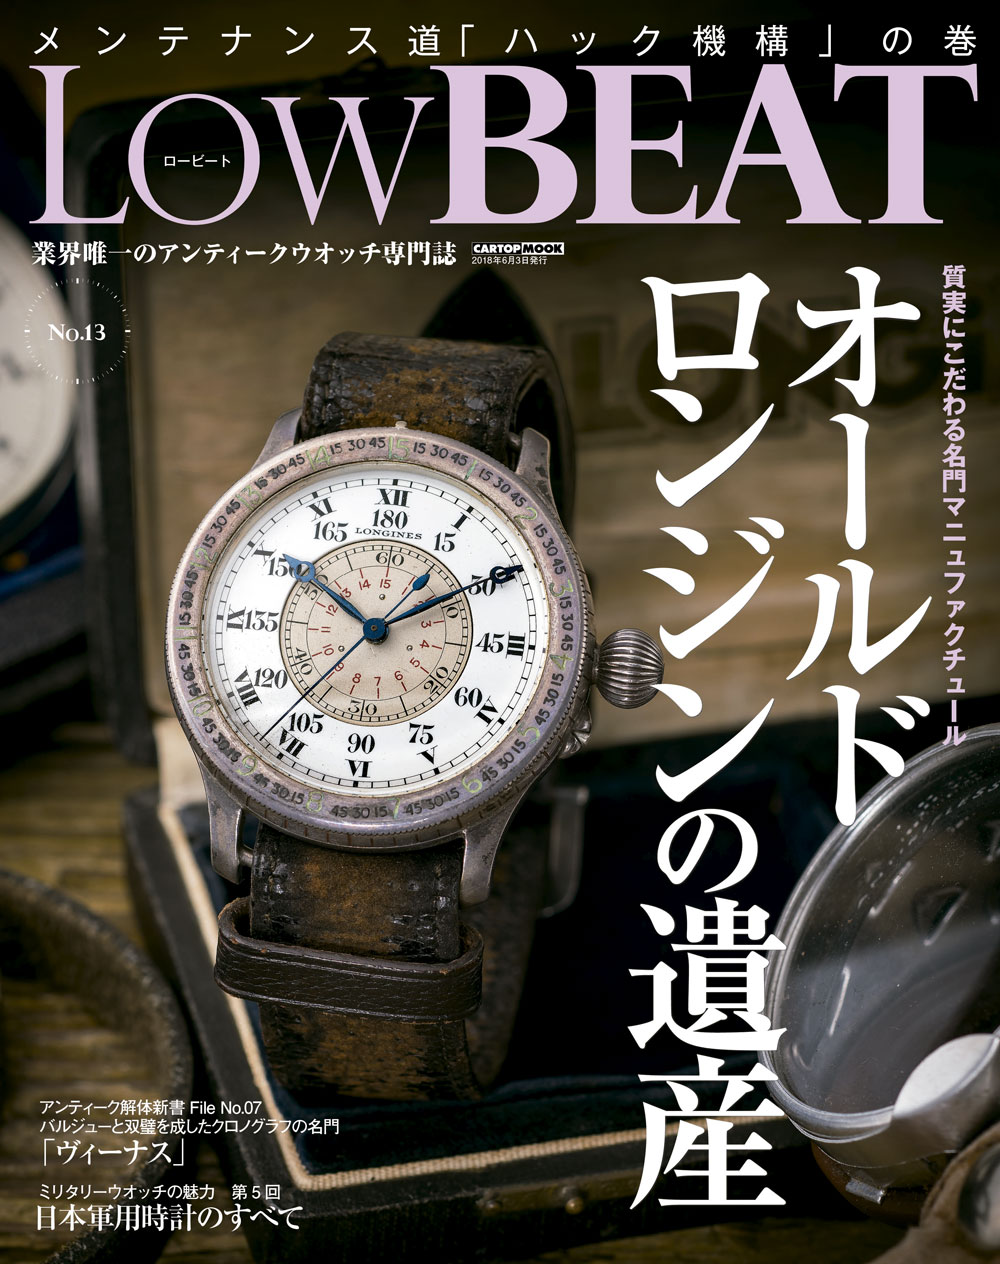 Low BEAT No.13